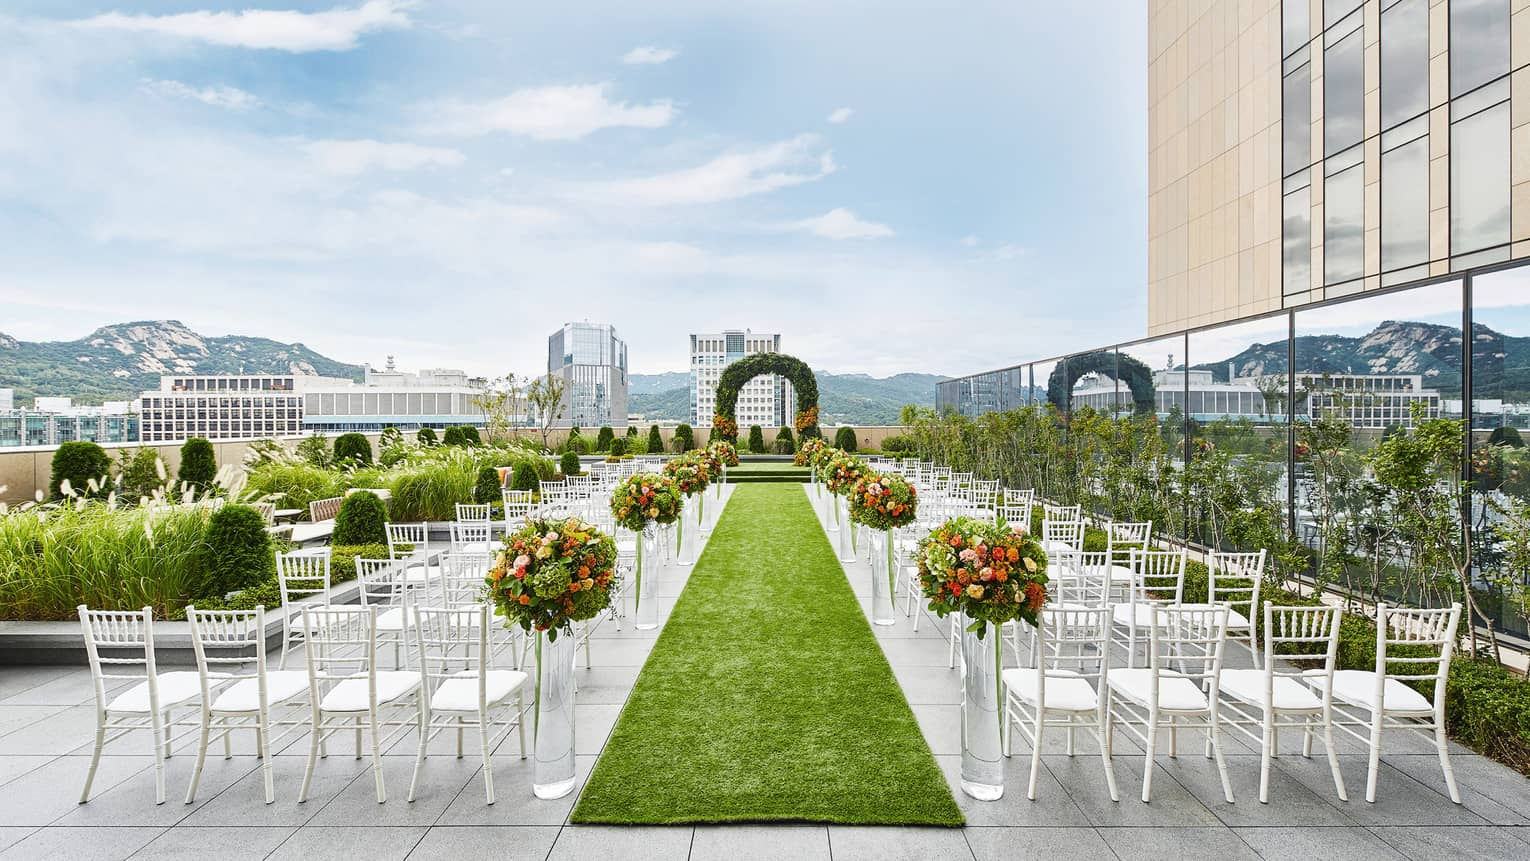 Rooftop patio wedding ceremony set up, rows of white chairs and green aisle facing altar